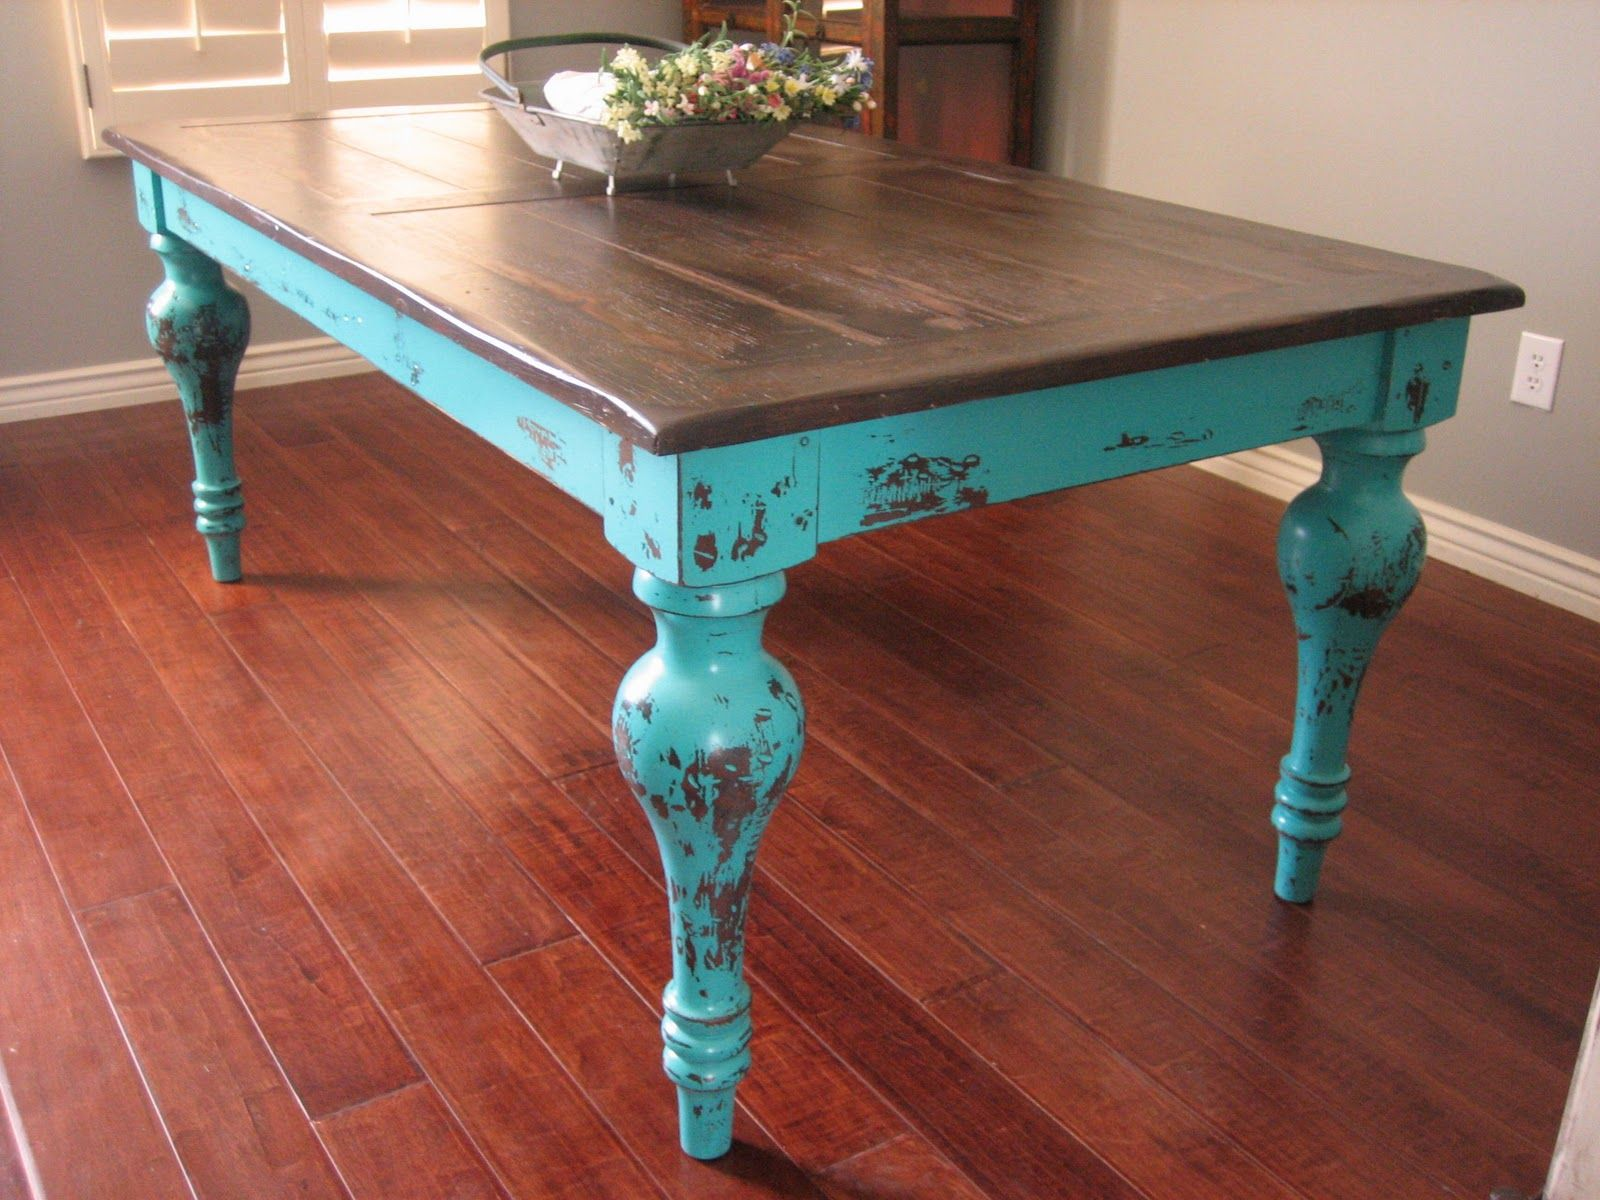 rustic dining table inspiration for my dining table re do europeanpaintfinishes - Colorful Dining Room Tables